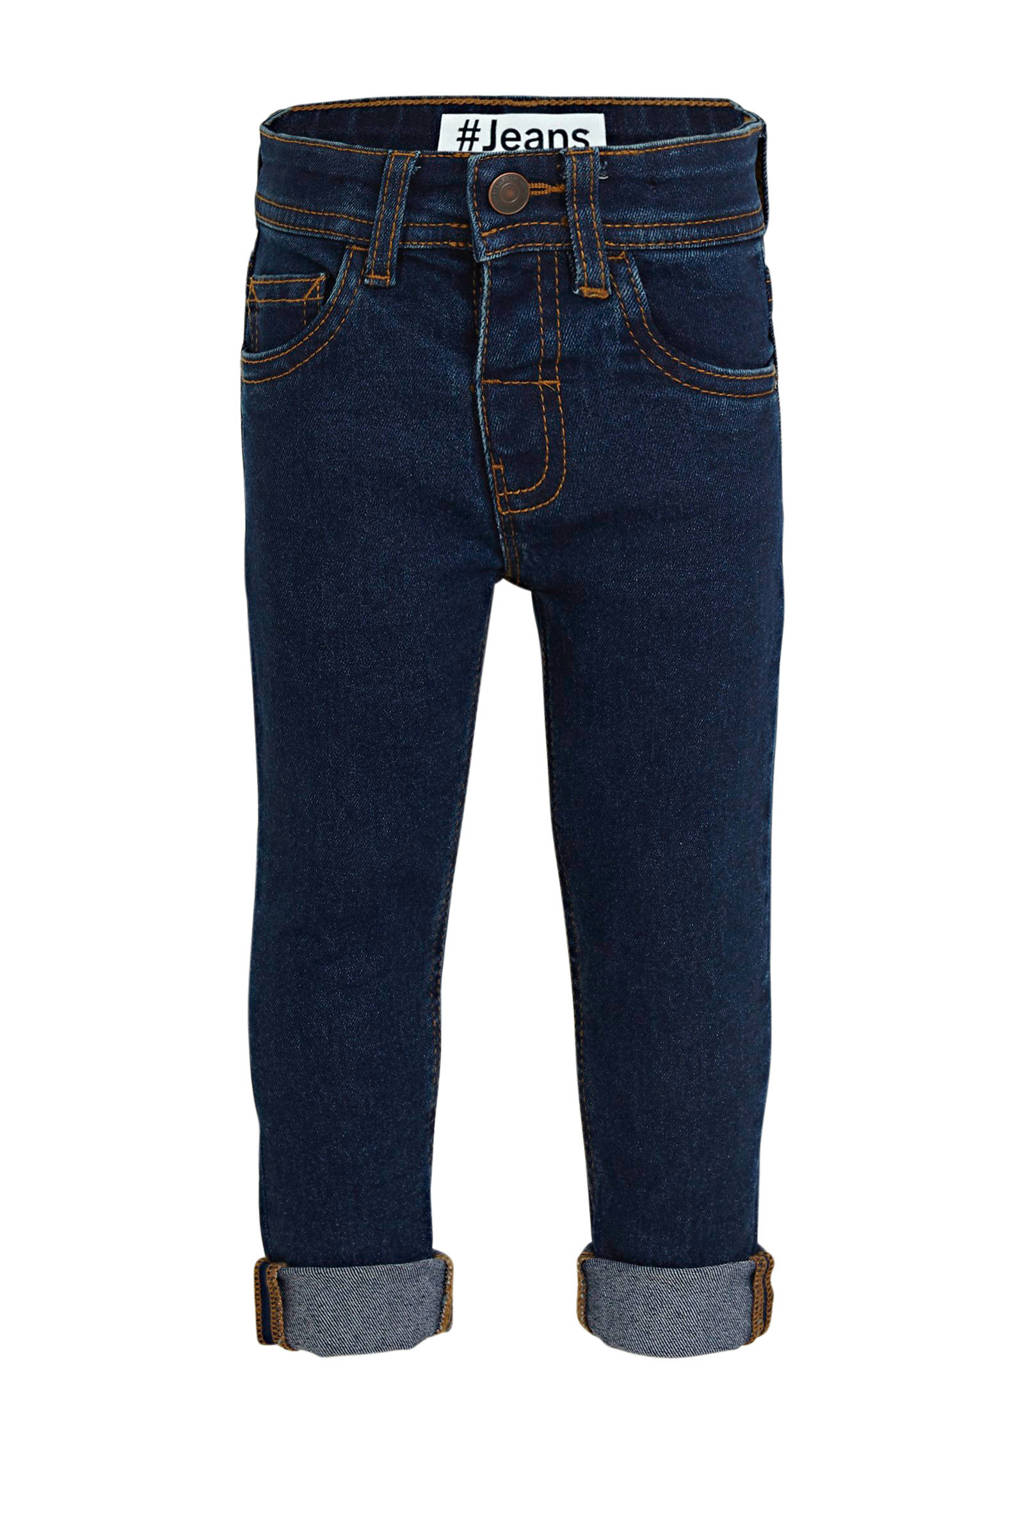 C&A Palomino skinny jeans dark denim, Dark denim